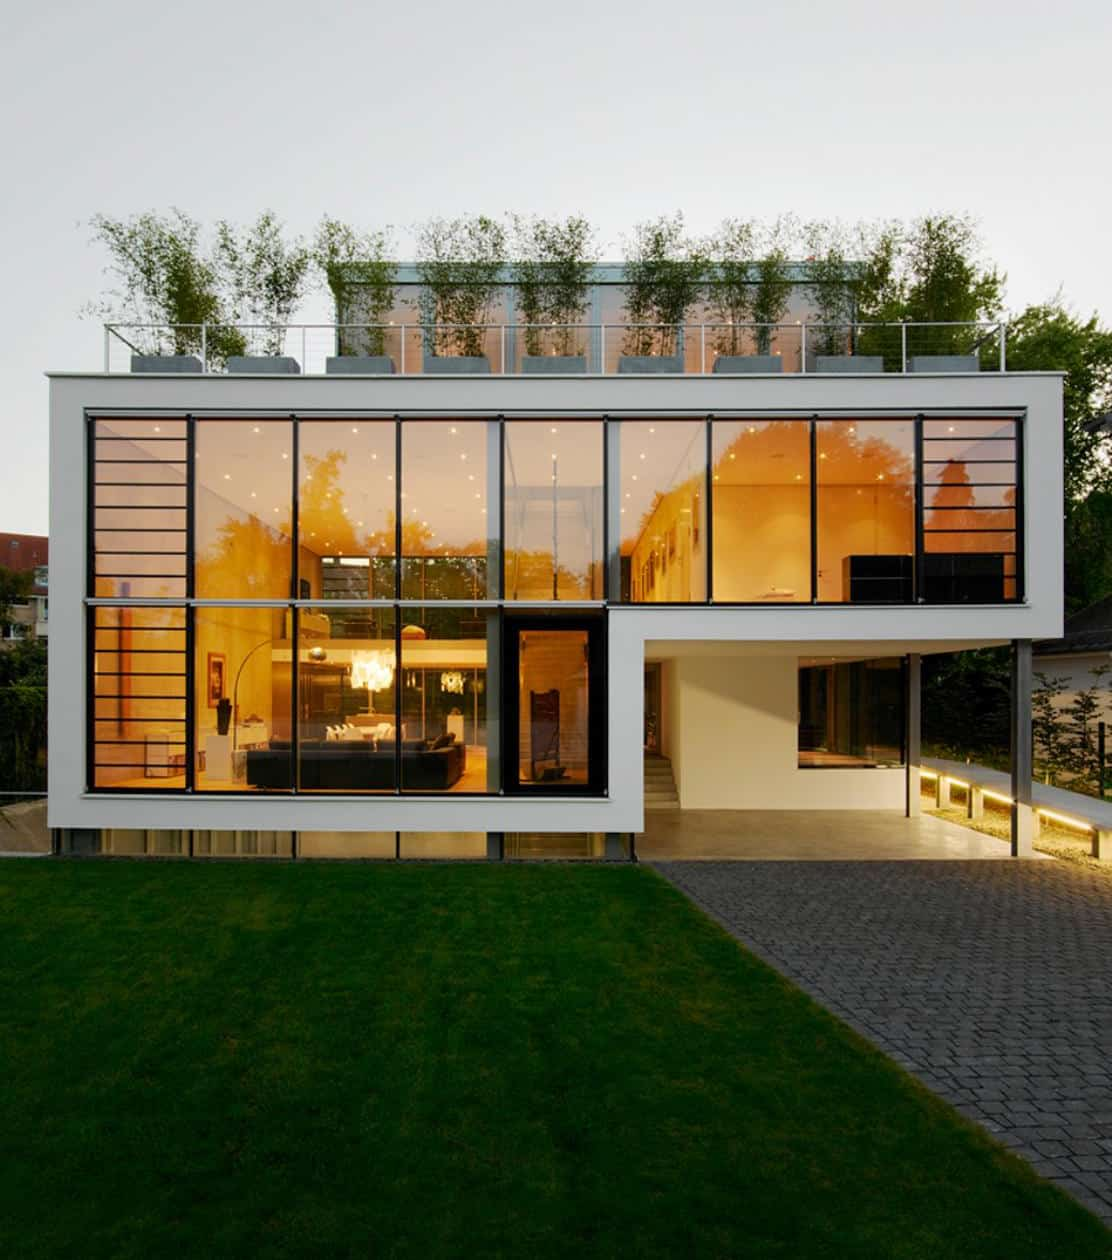 Energy Optimized House with Roof Terrace, Louver Windows, Exterior Window Shutters and Elevator